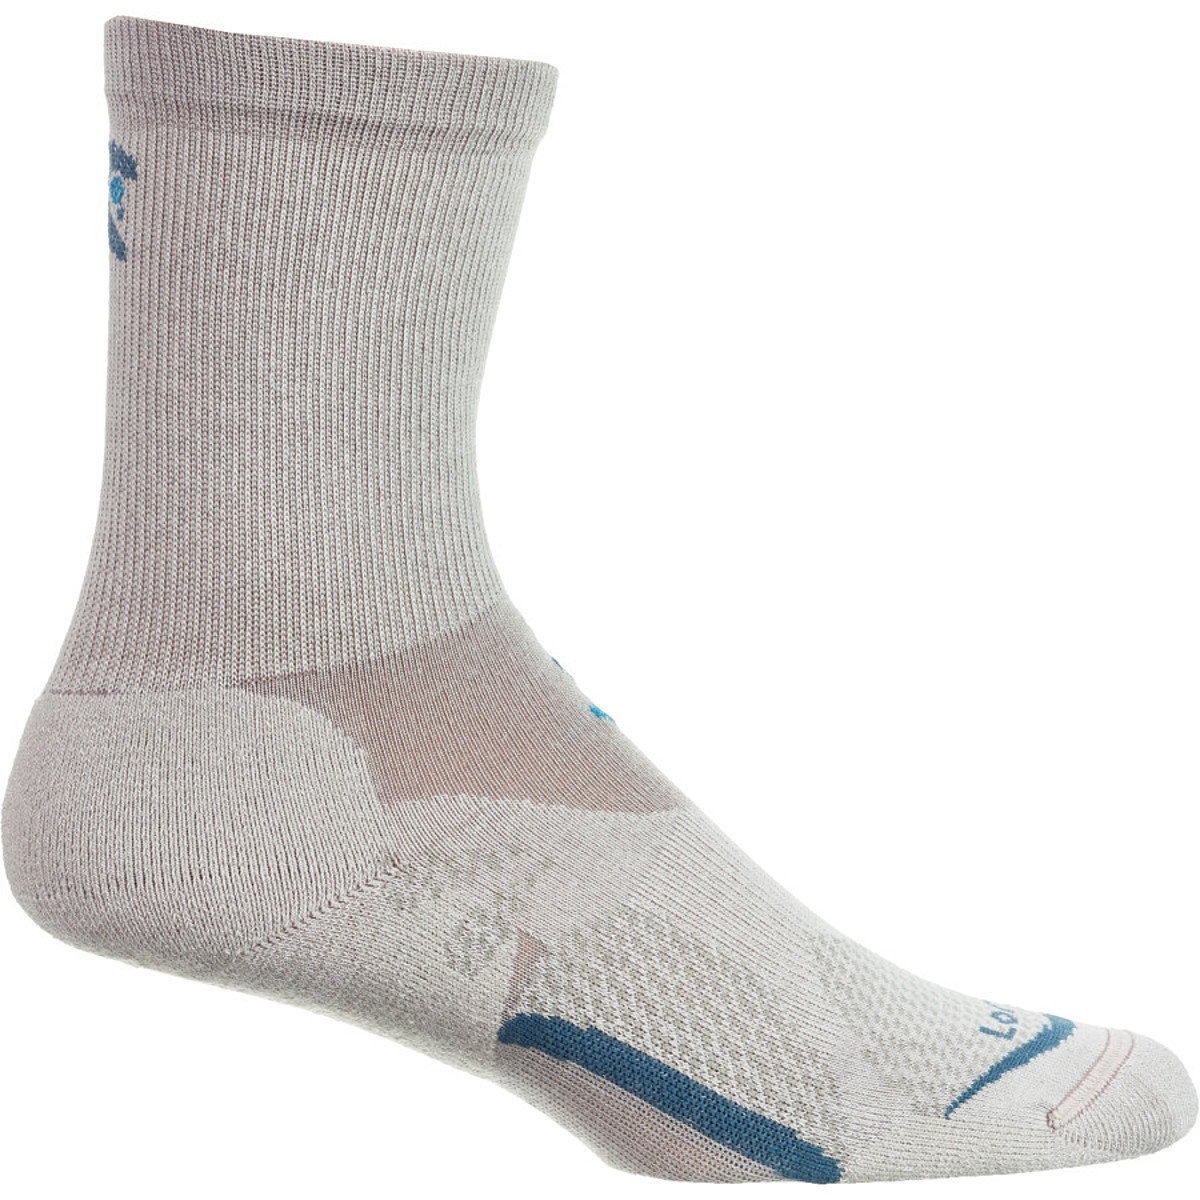 photo of a Lorpen hiking/backpacking sock